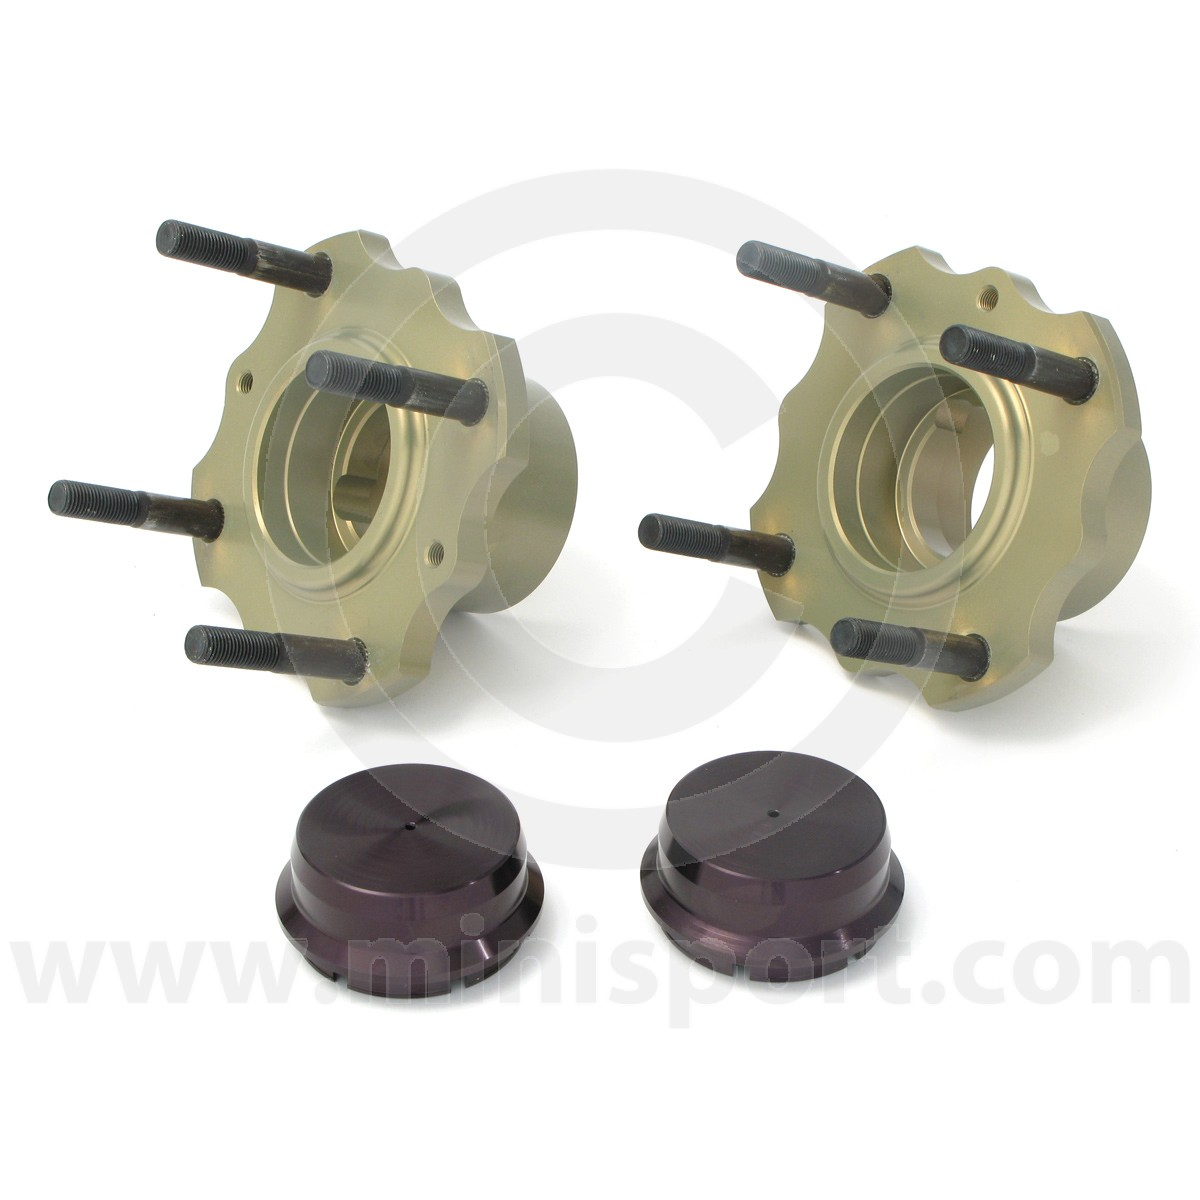 21a1277a Mini Rear Hub Kit Wheel Hubs Sport 1275 Gt With Alternator And Rocker Type Switches Alloy Lightweight Pair